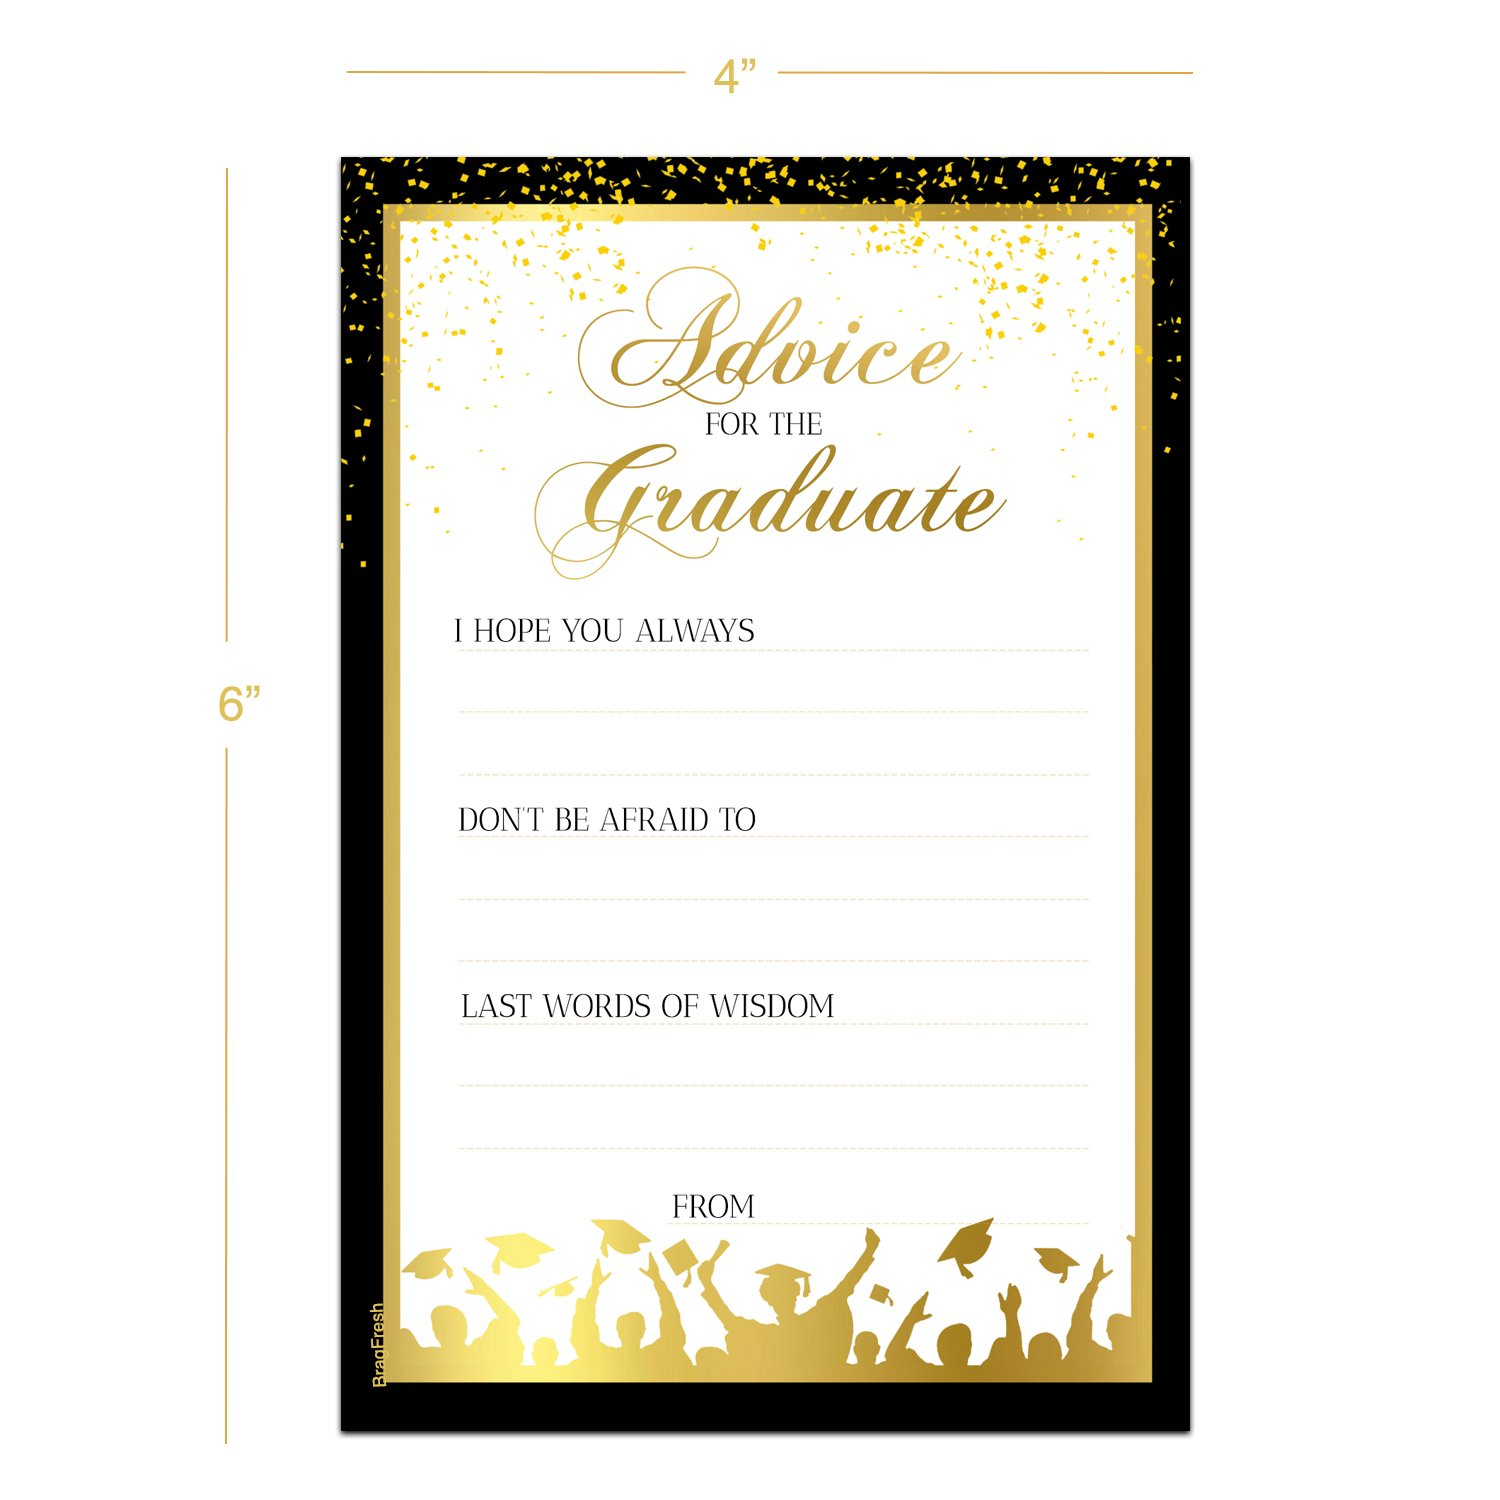 25 Graduation Advice Cards for the Graduate - High School or College Graduation Party Games Activities Invitations Decorations Supplies by Brag Fresh (Image #3)